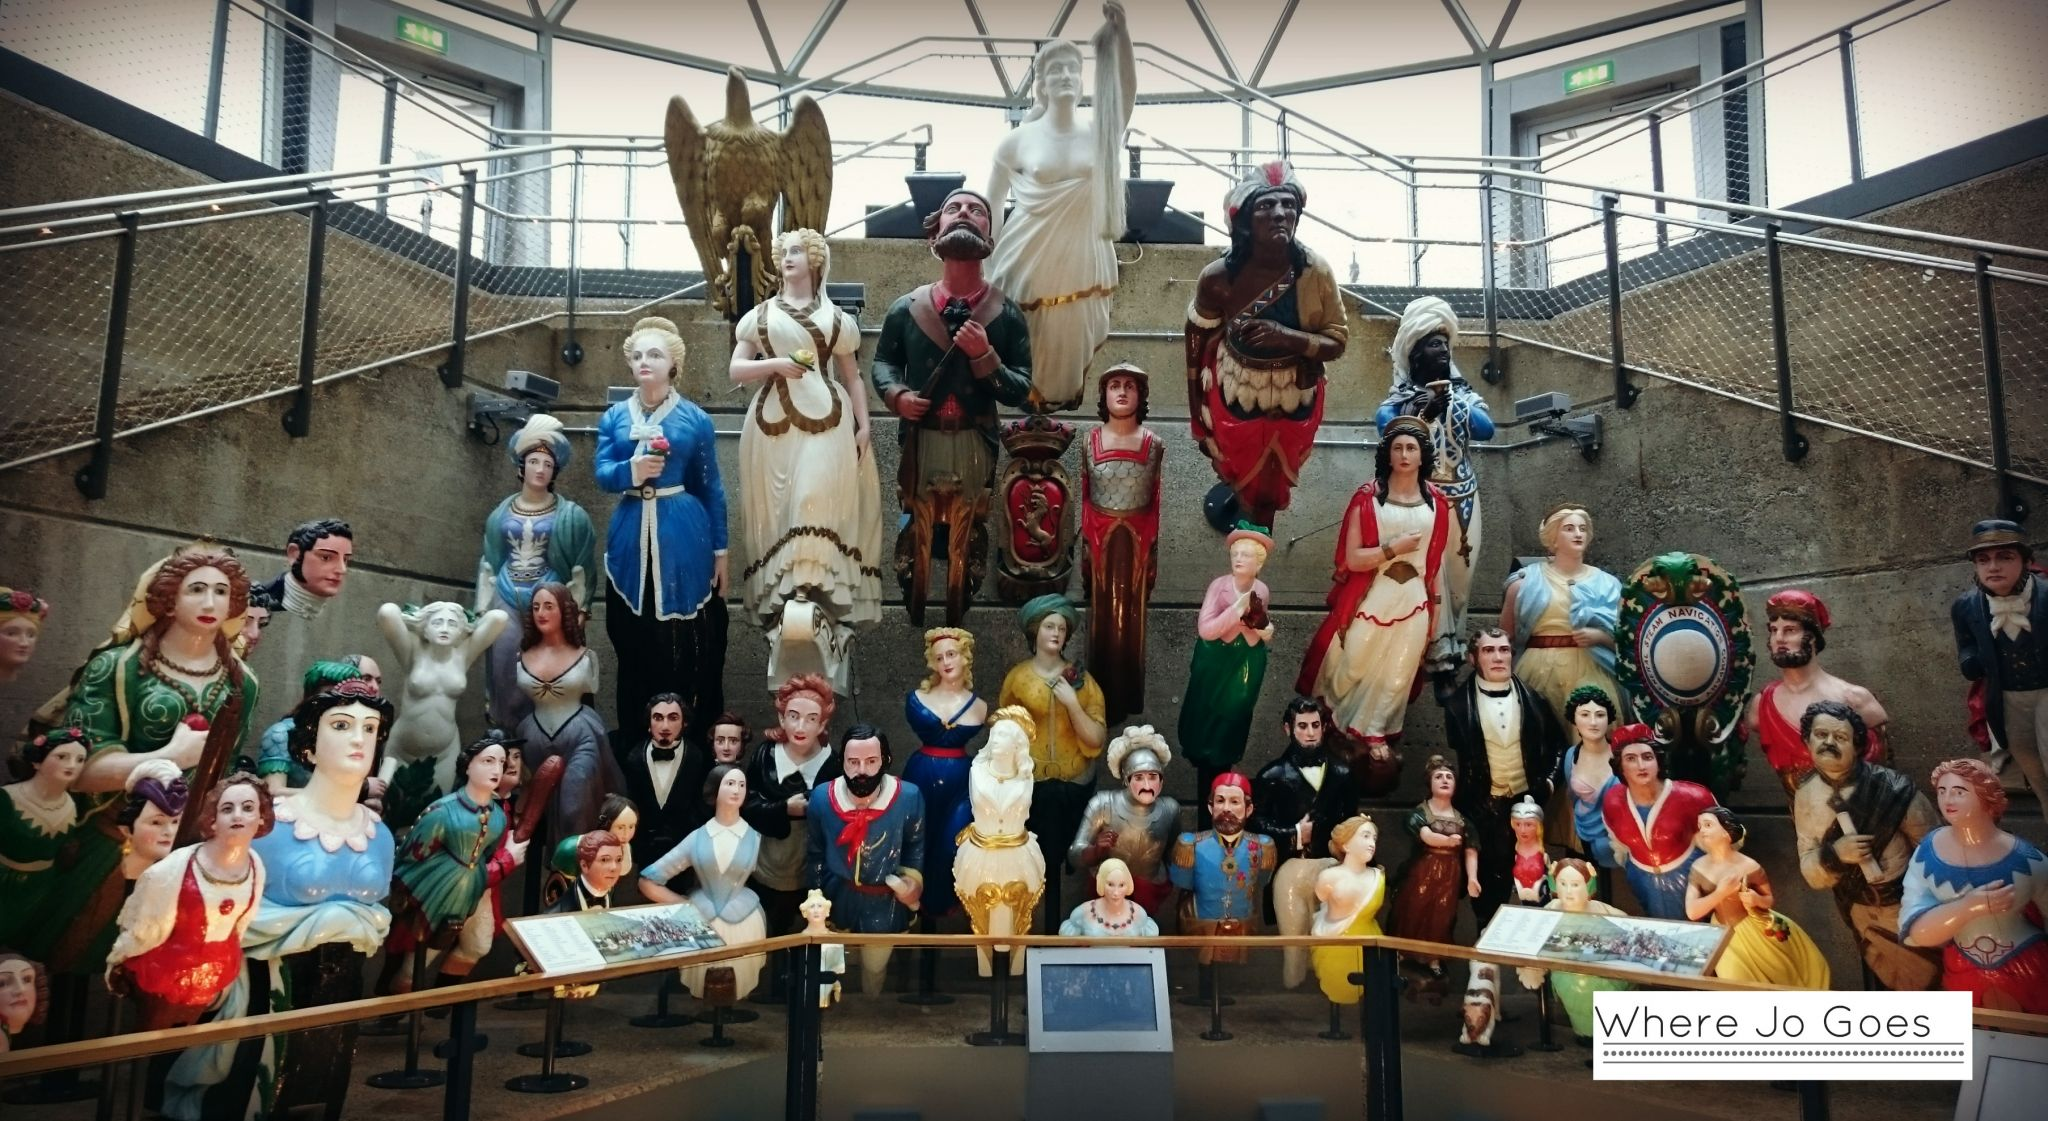 Figureheads, Cutty Sark, Greenwich